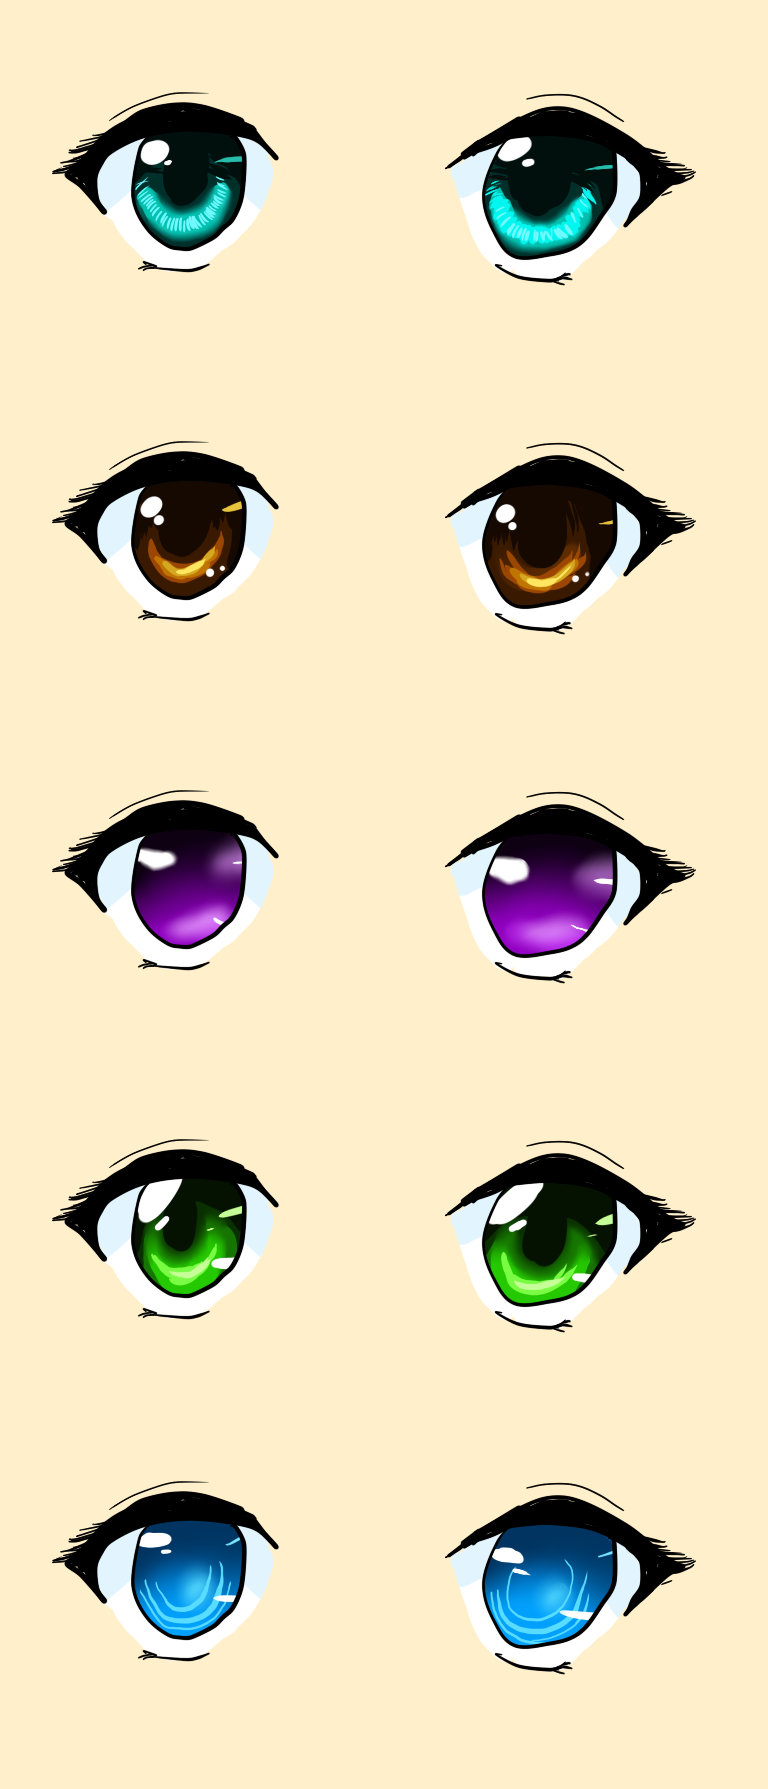 5 ways to color anime eyes by sisleyloveskiro on deviantart